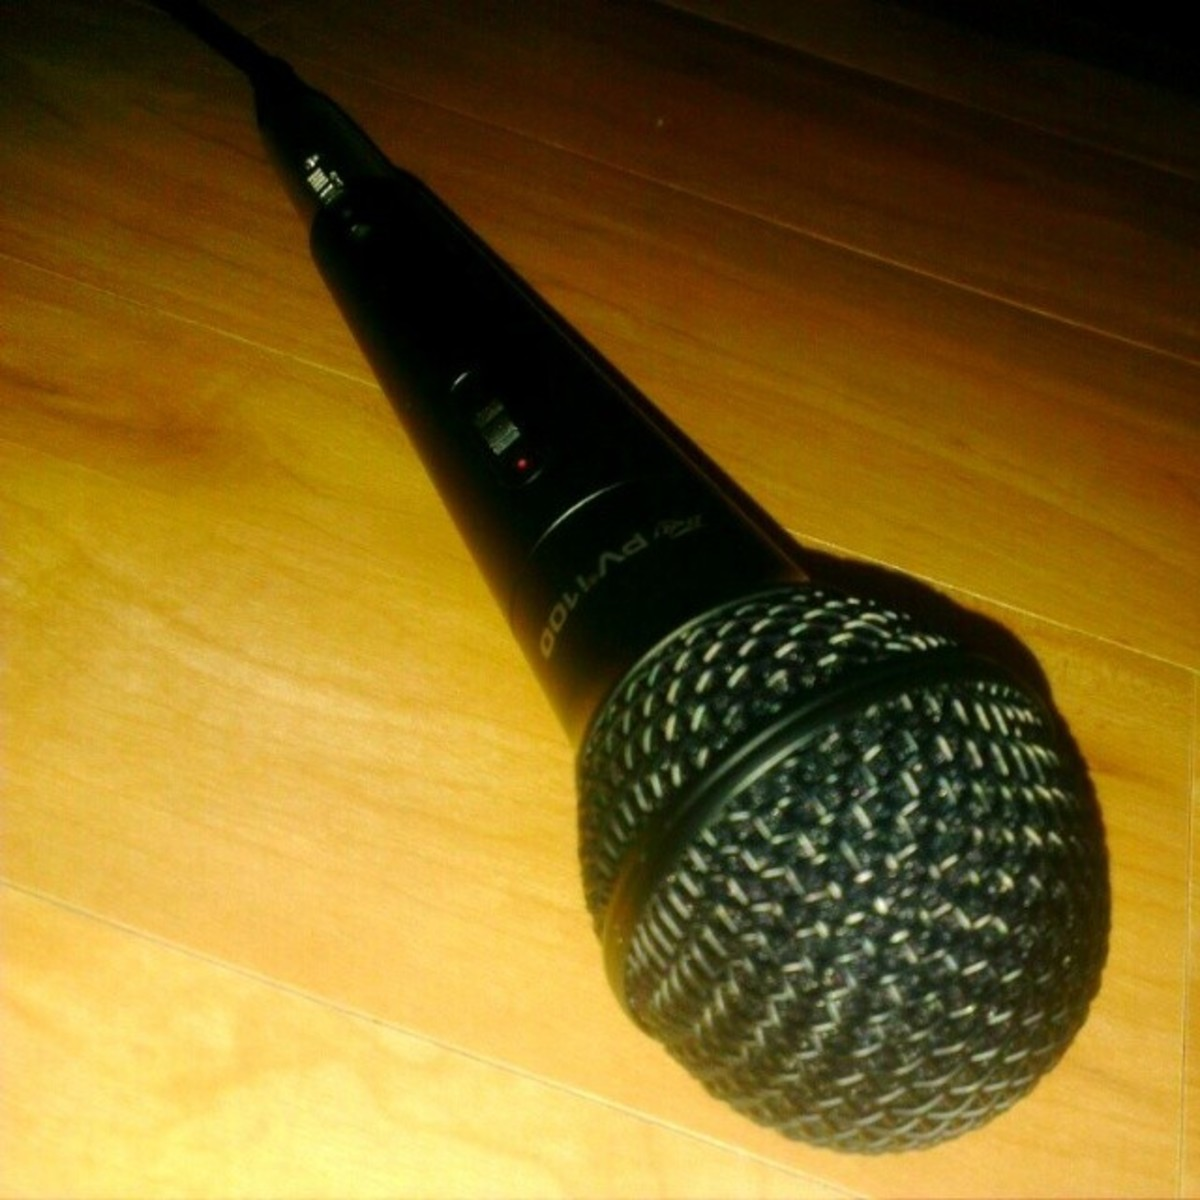 Peavey PVi 100 Dynamic Microphone Review—Best Cheap Microphone?